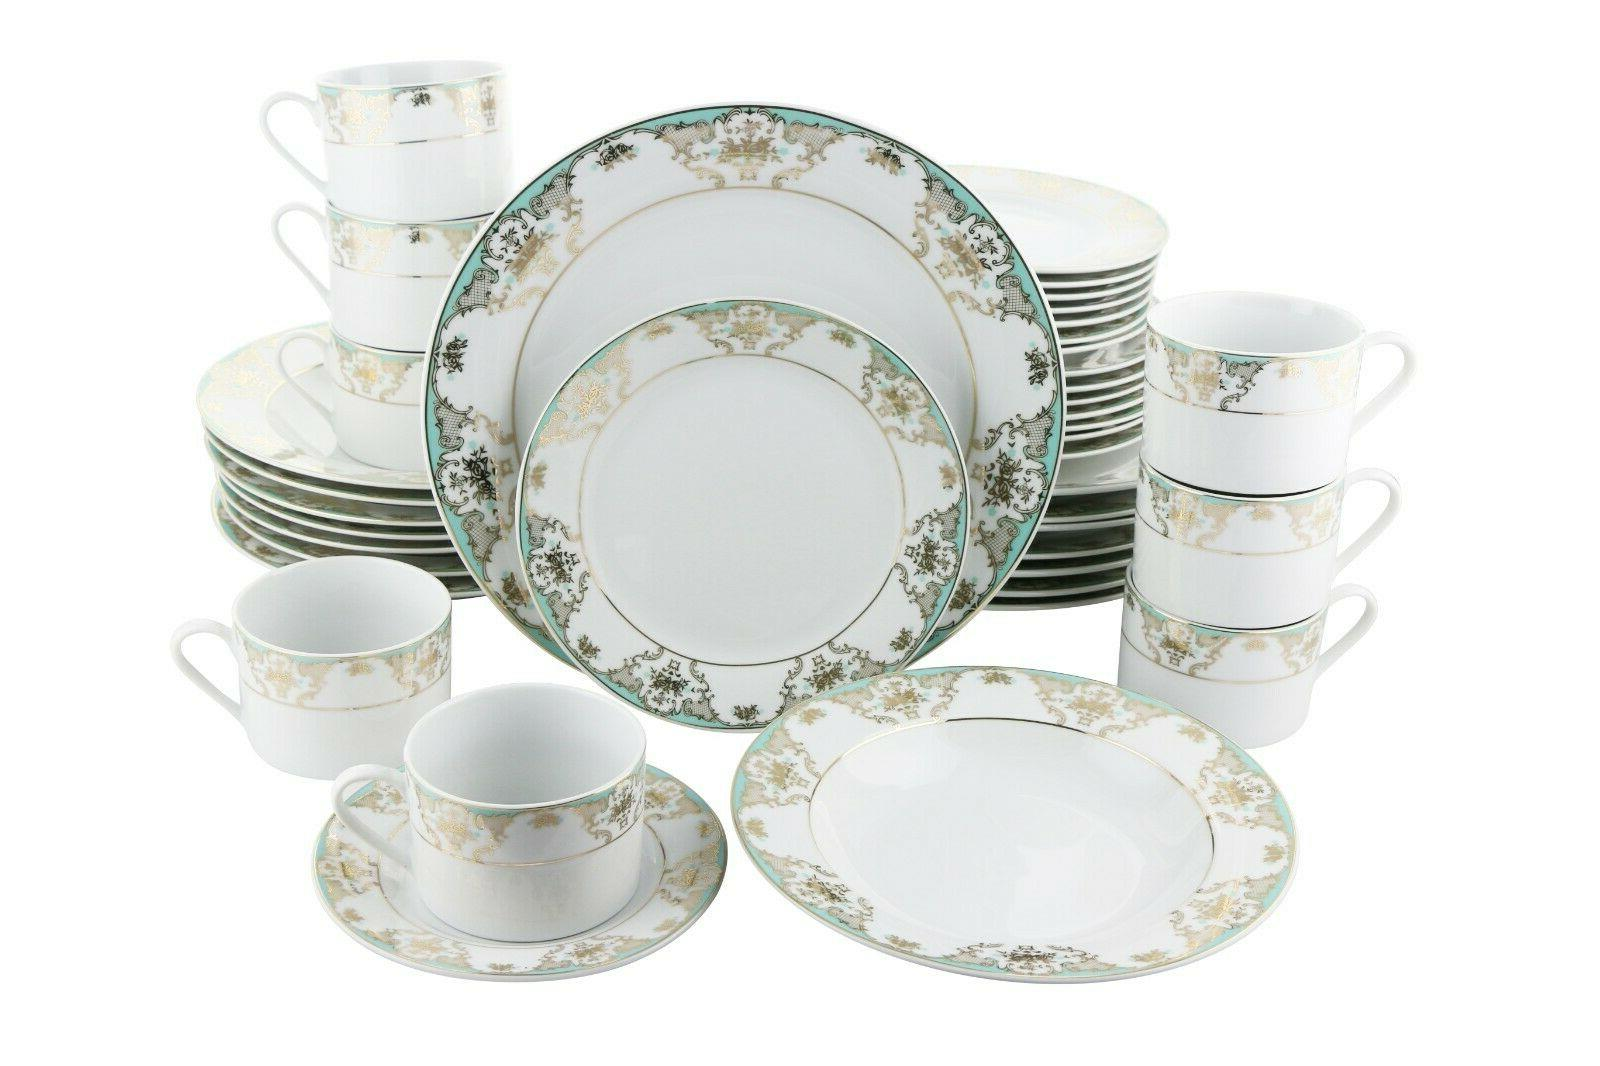 Teal and Gold 40 Piece Dinning set Serving Service for 8